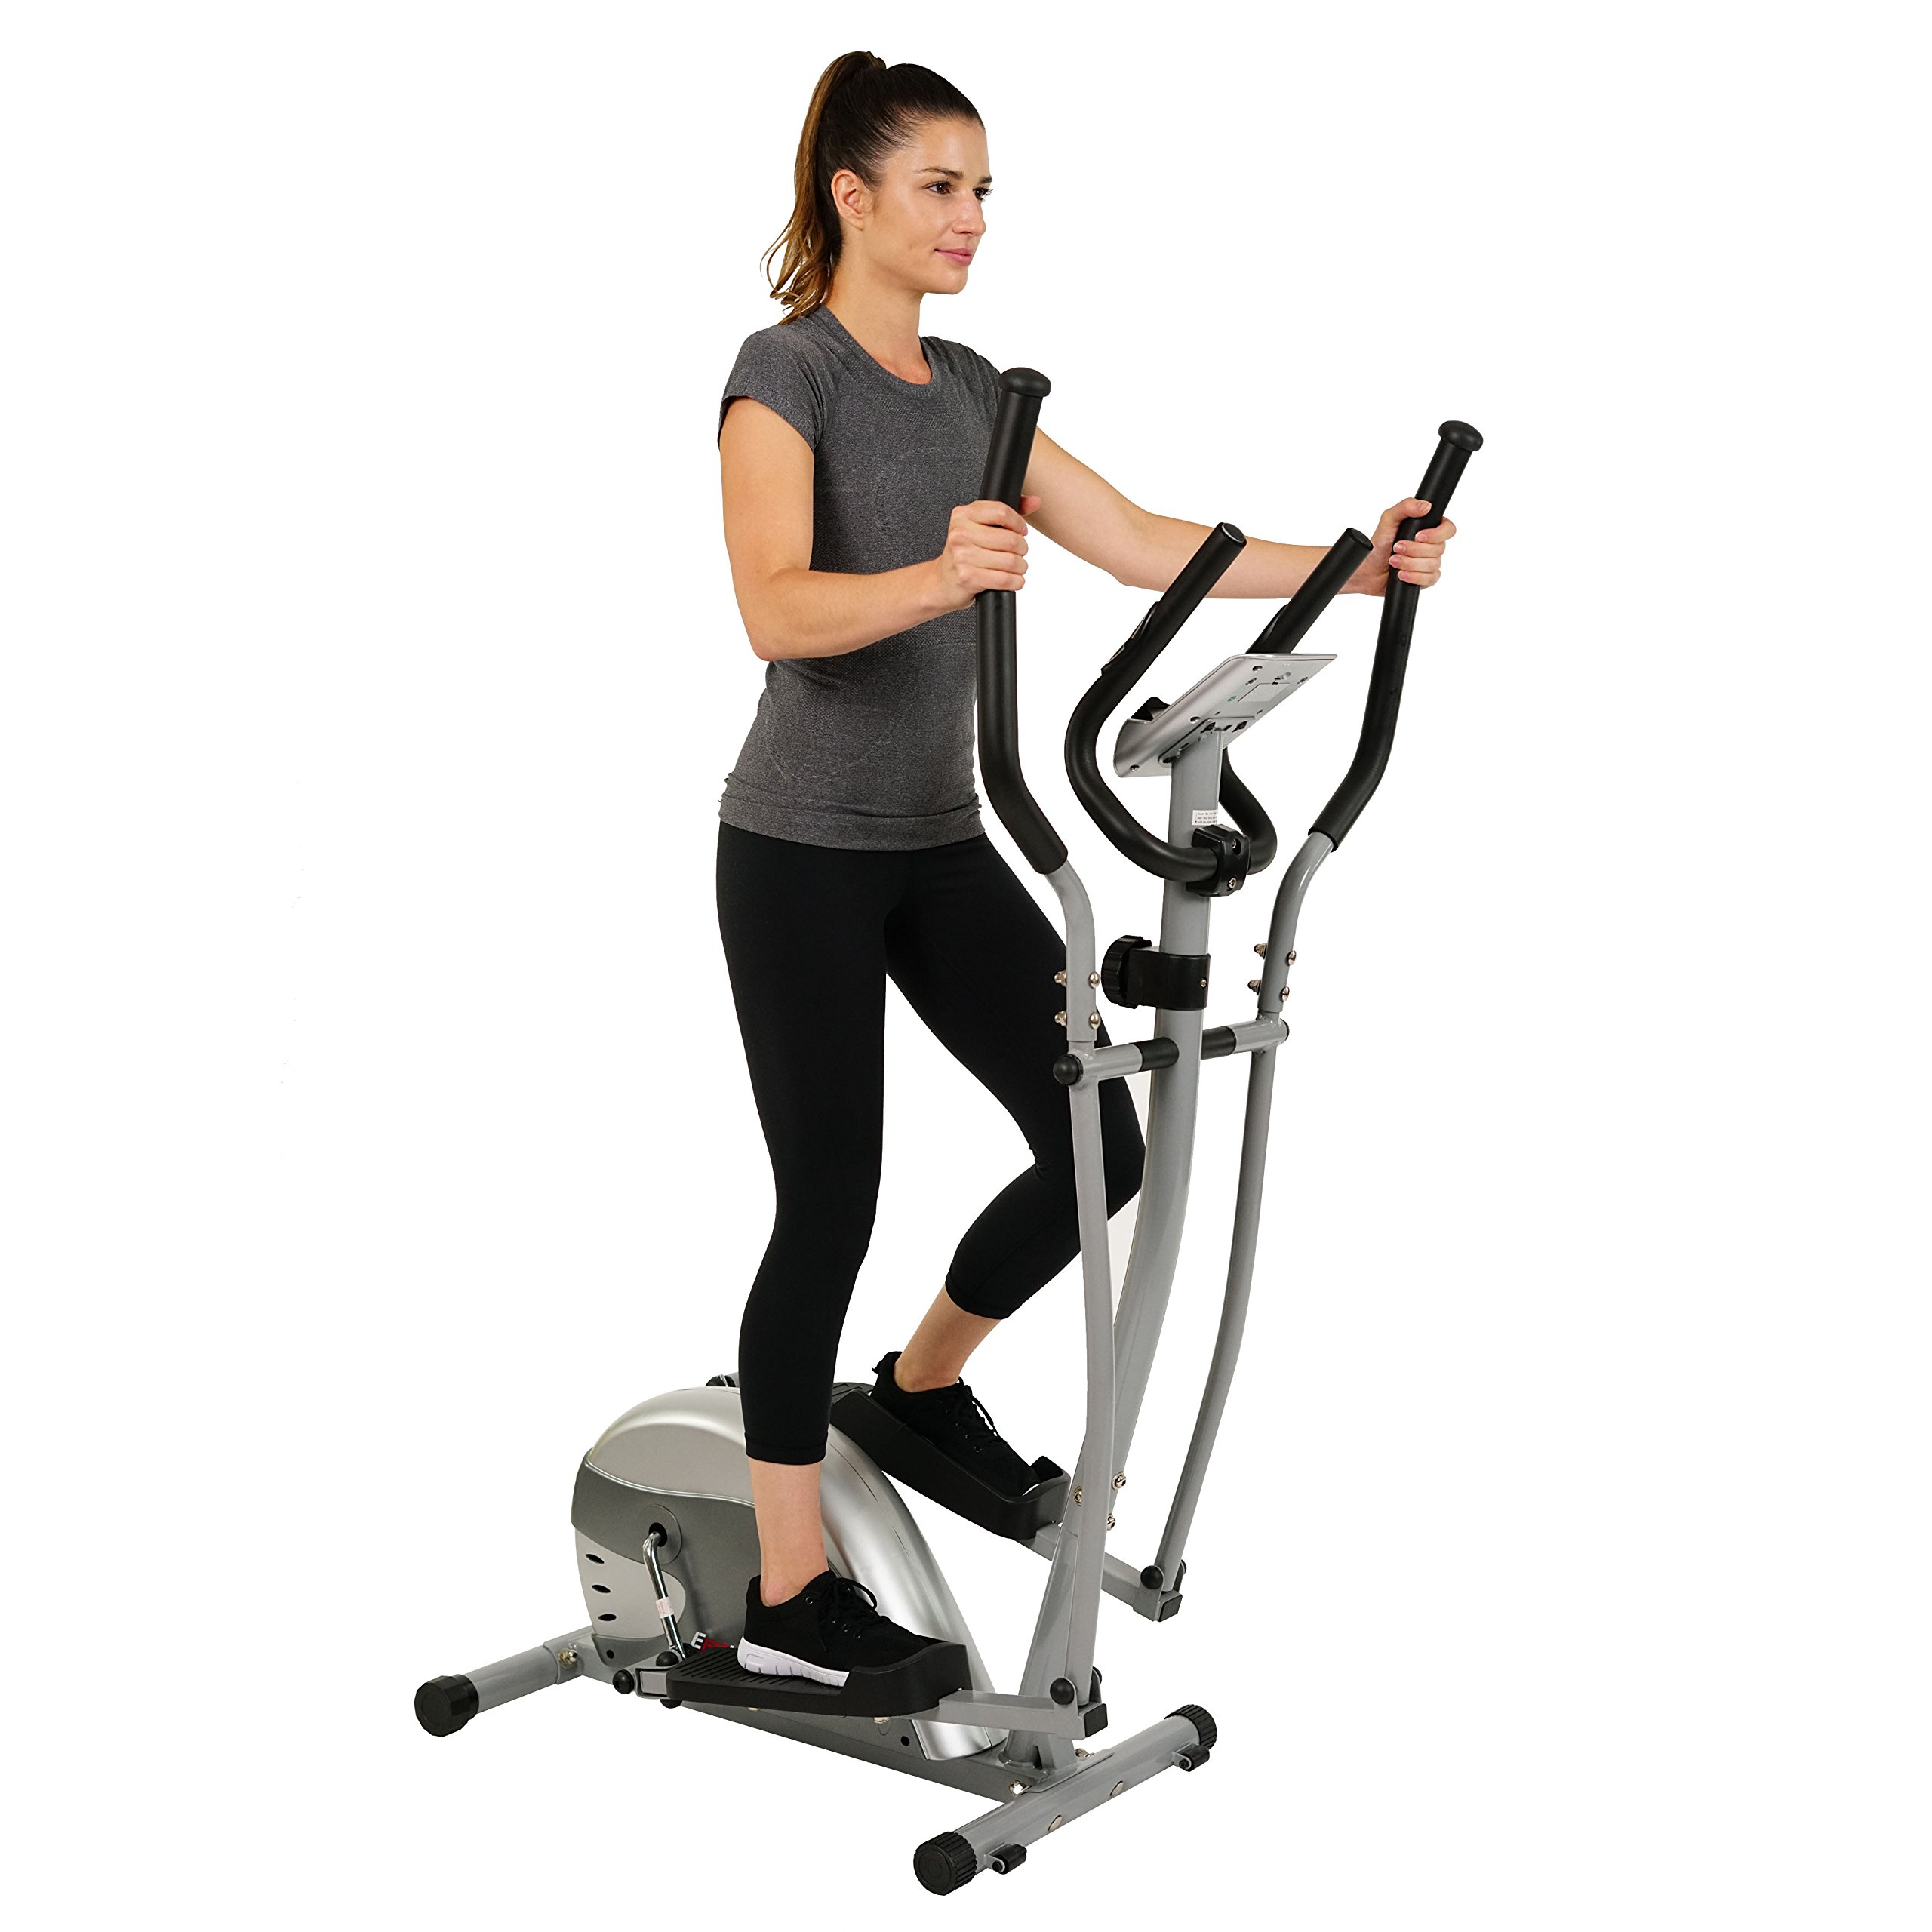 EFITMENT Compact Magnetic Elliptical Machine Trainer with LCD Monitor and Pulse Rate Grips - E005 by EFITMENT